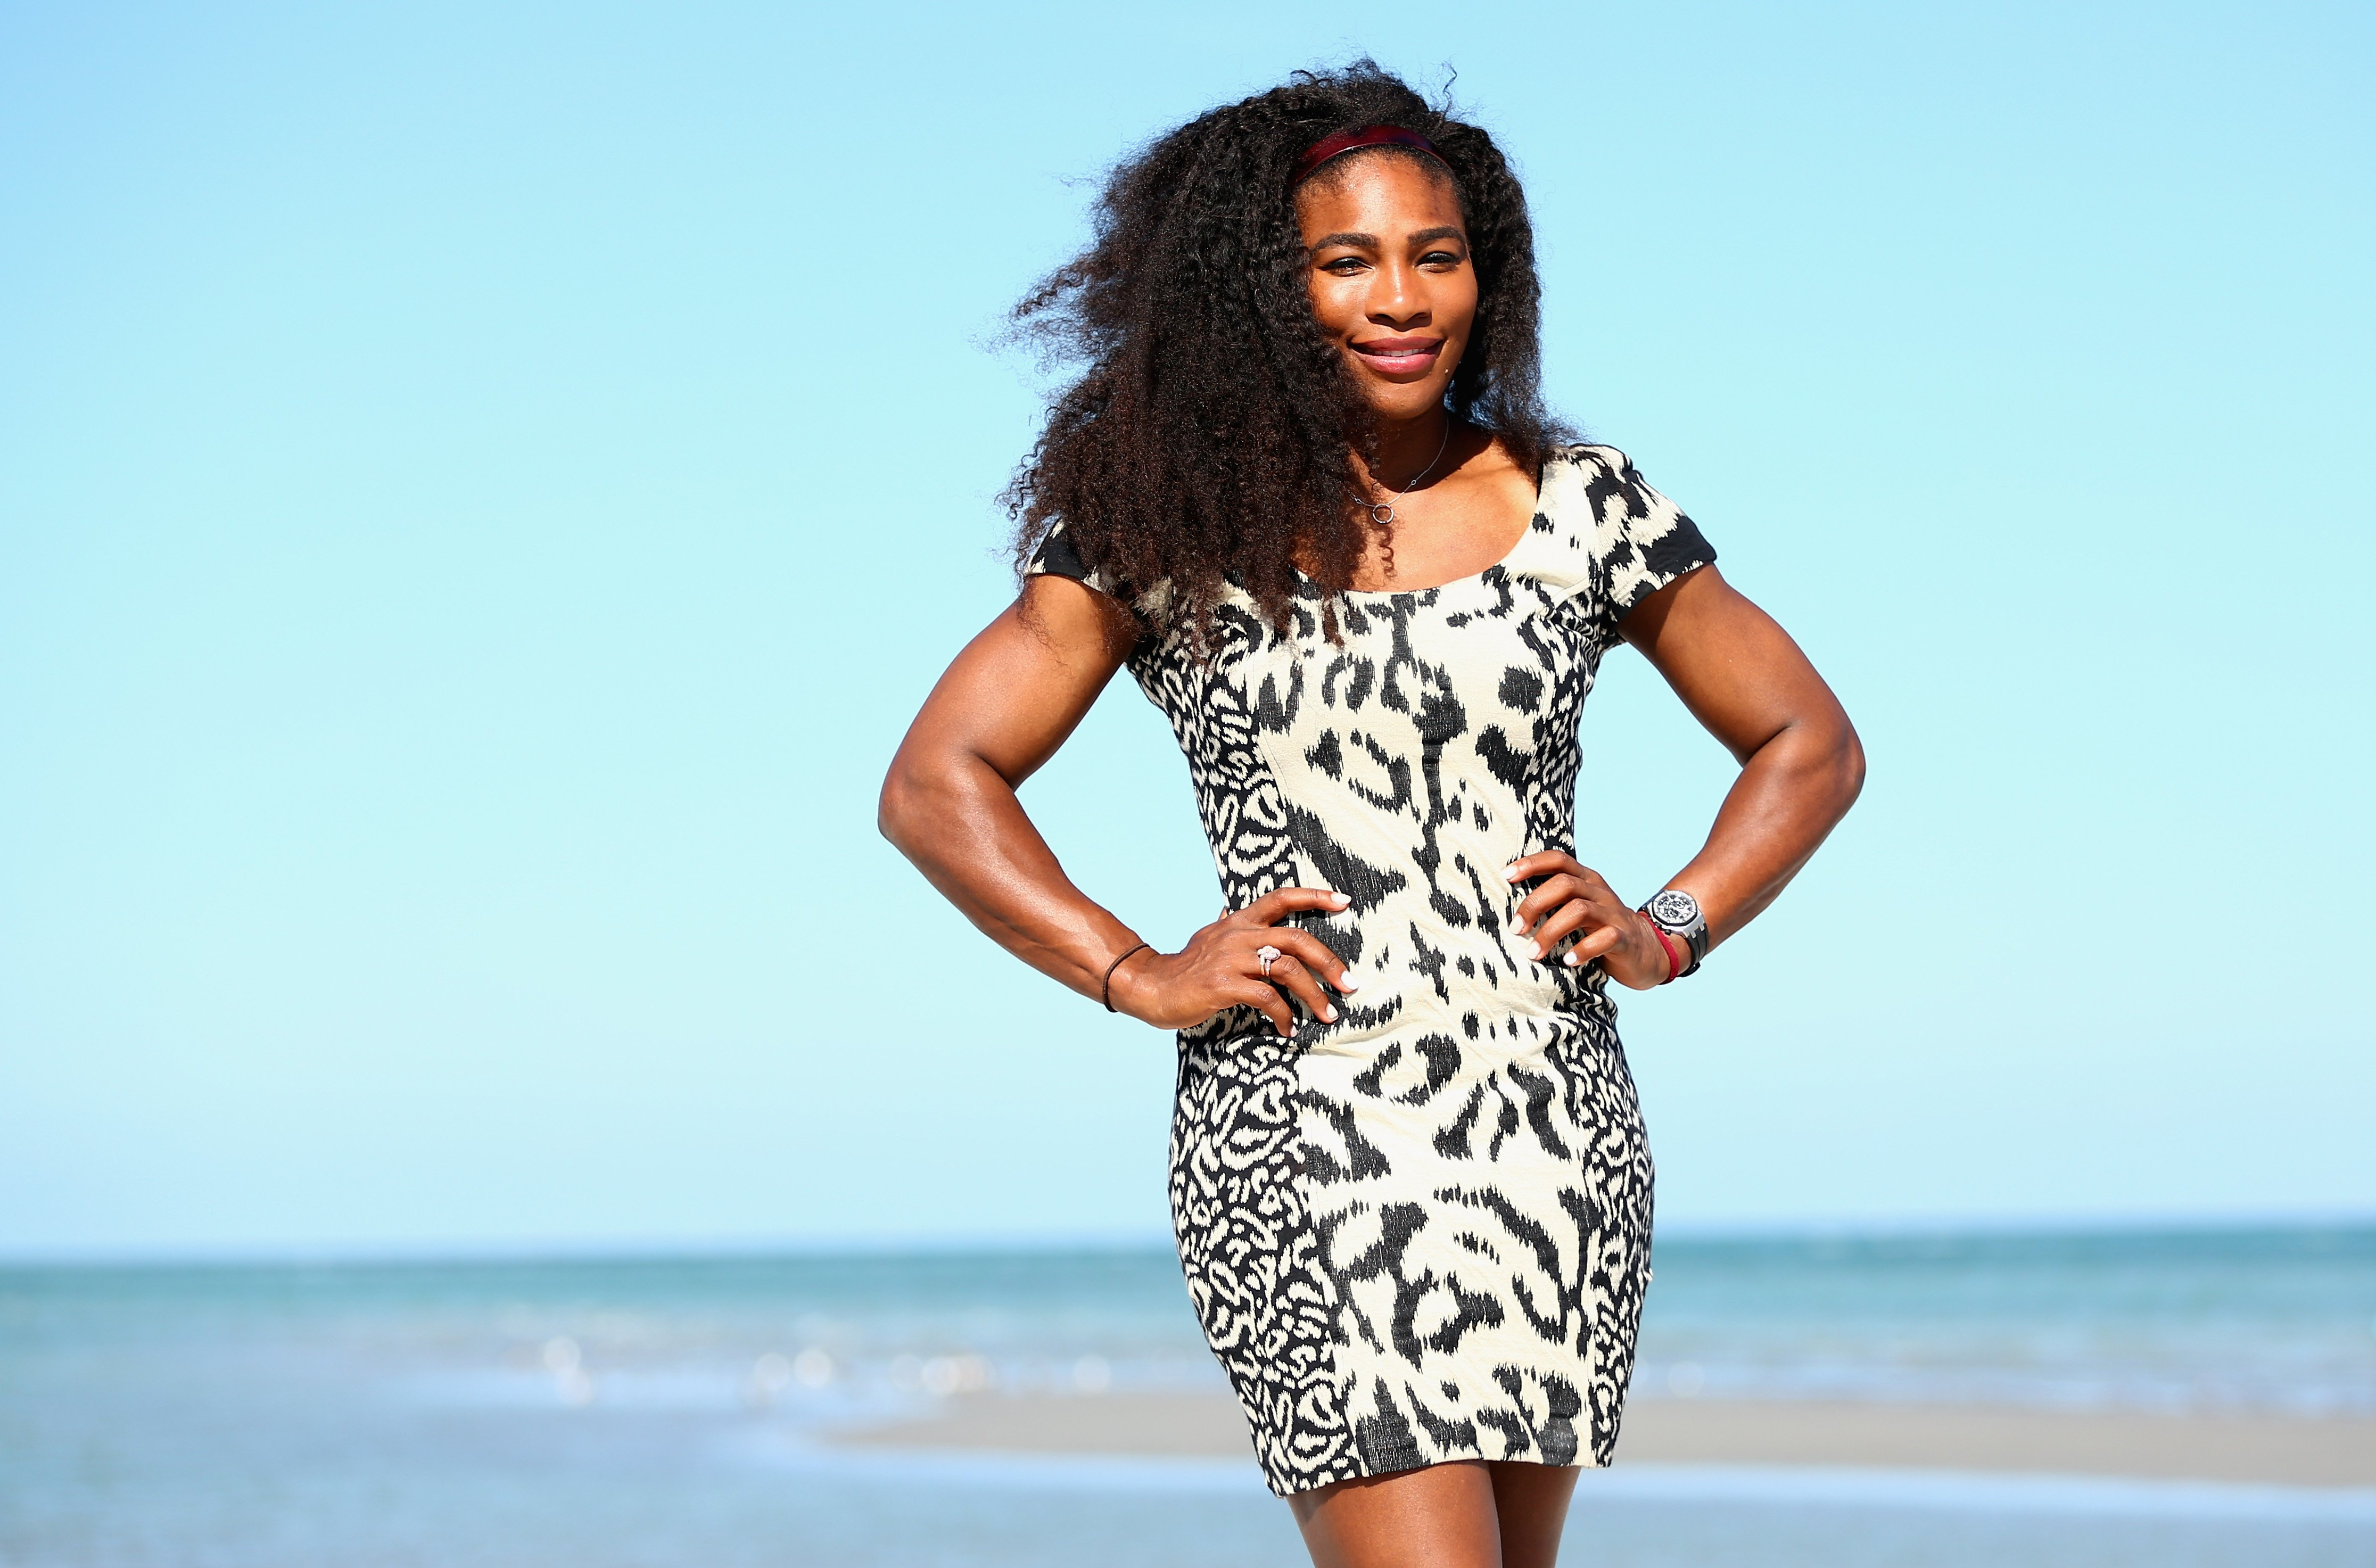 Serena Williams poses for a photograph during the Miami Open Presented by Itau on April 4, 2015 in Key Biscayne, Florida   Photo: Getty Images